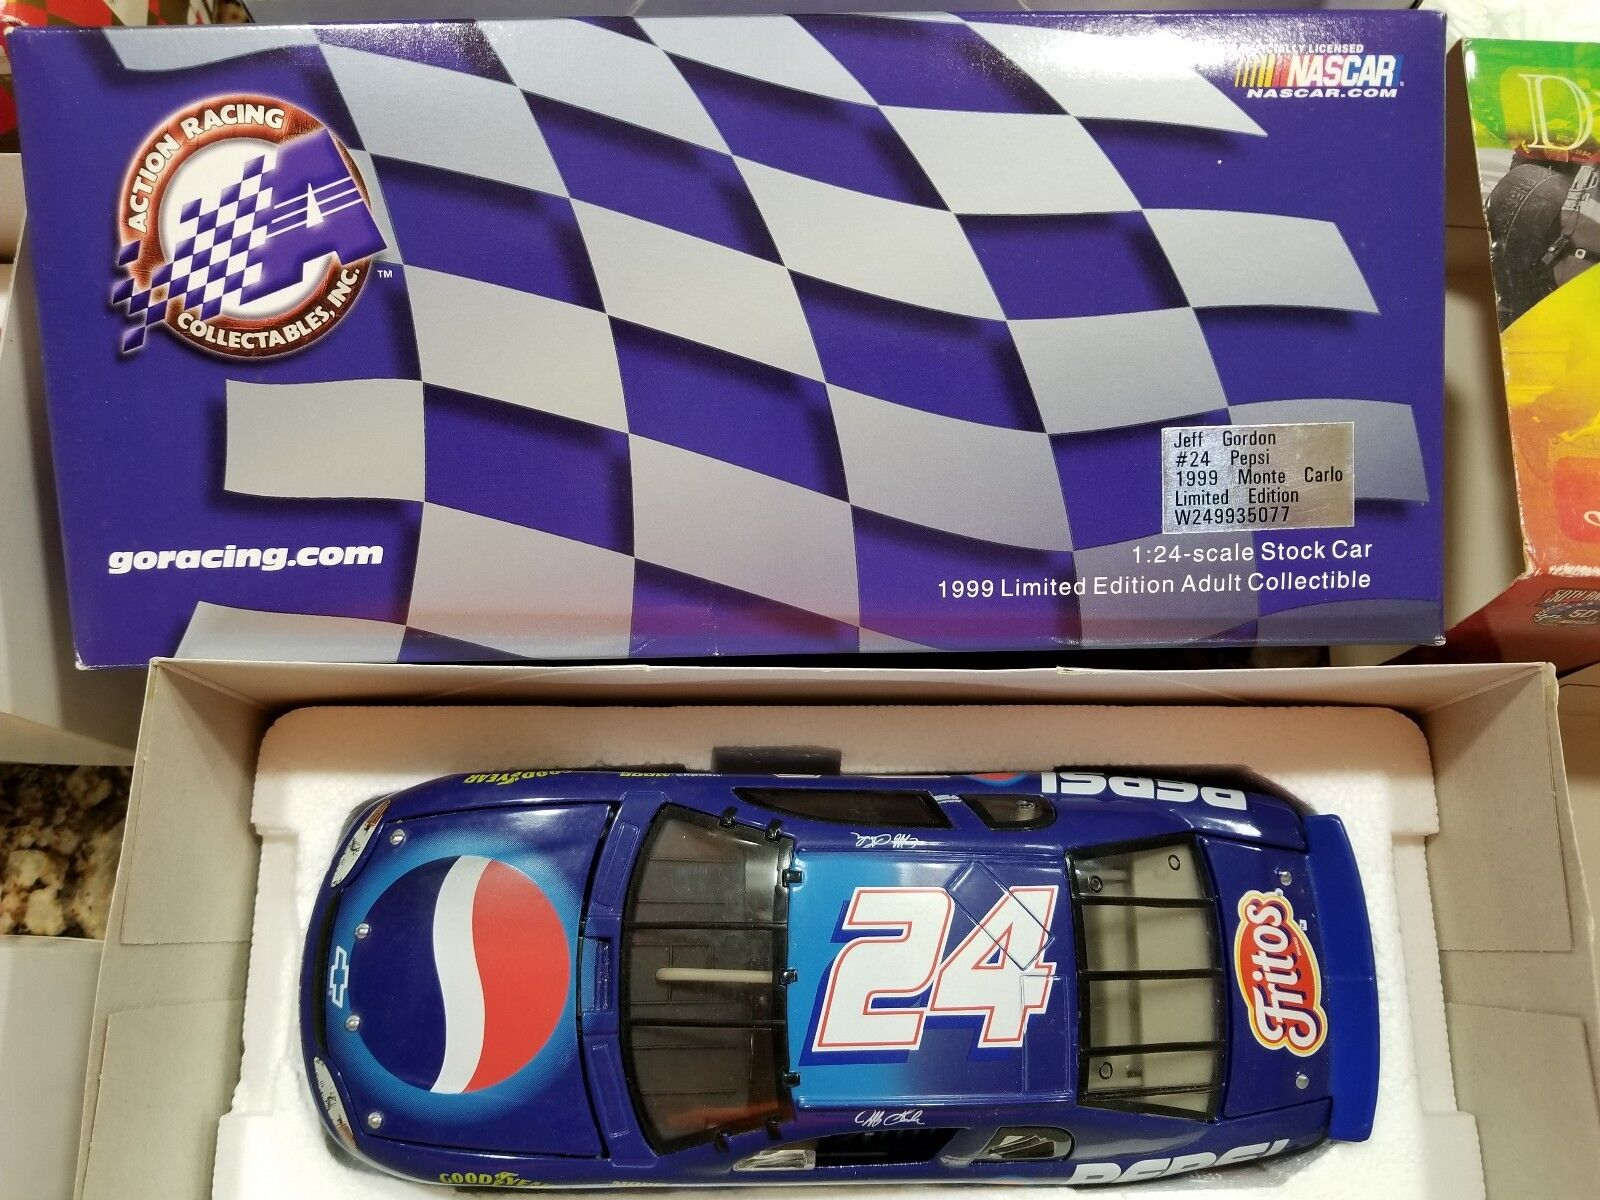 Jeff Gordon Action Racing 1 24 Scale Car Bank Bank Bank Lot Collectable a66f5f